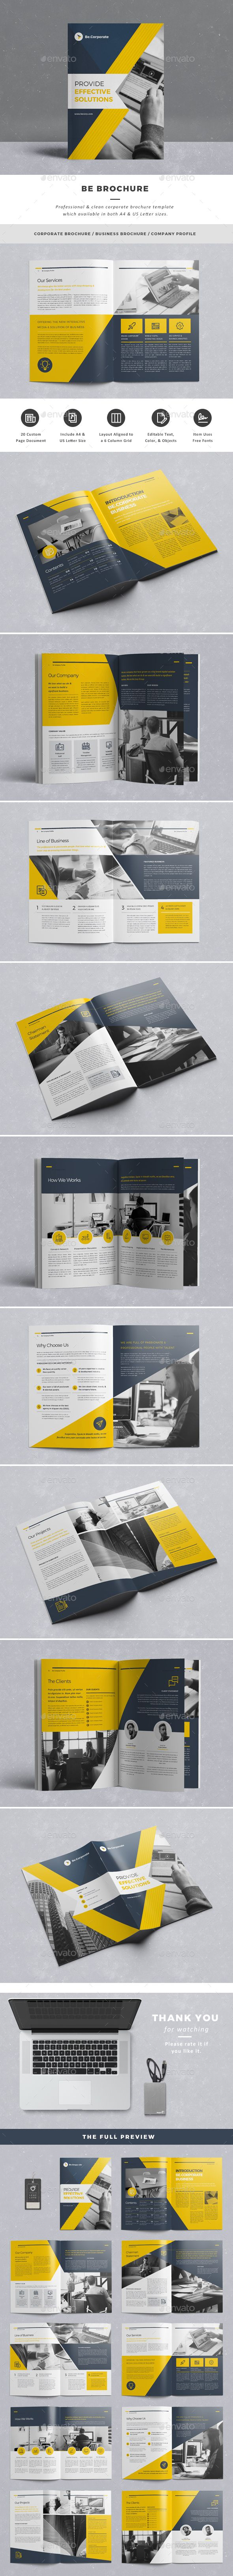 Be Brochure Template InDesign INDD. Download here: http://graphicriver.net/item/be-brochure/15667624?ref=ksioks